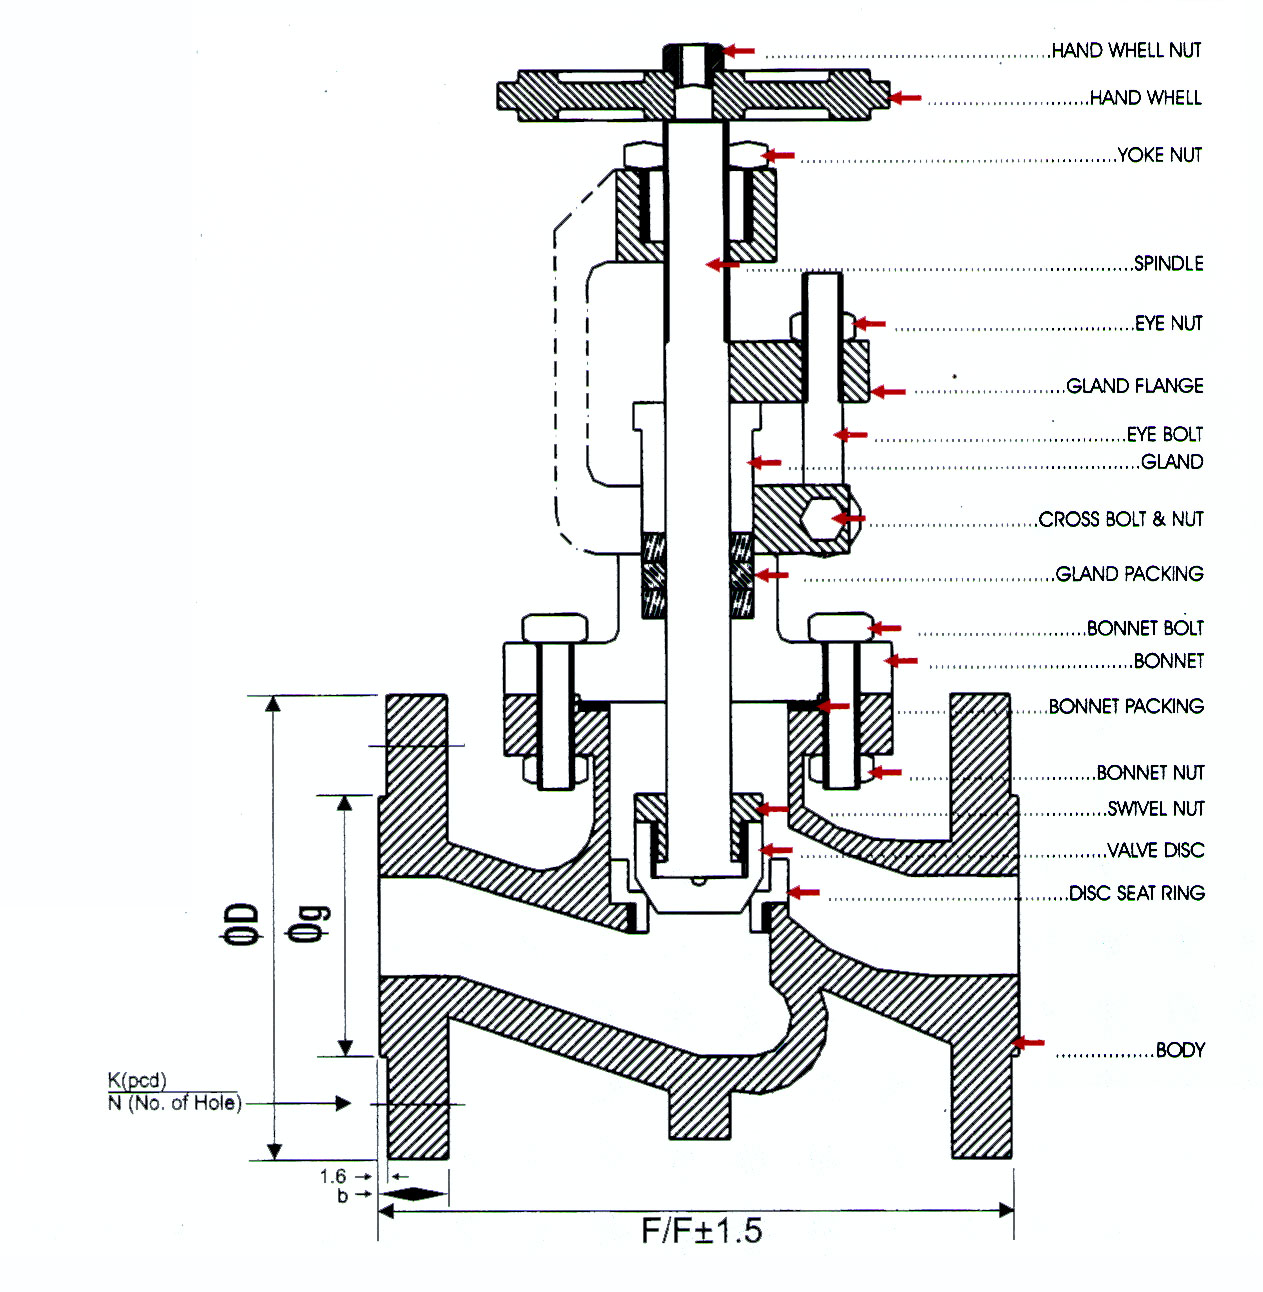 Globe Valve Diagram Trusted Wiring Inspection 7 A Typical Hydraulic Motor Circuit Engineering360